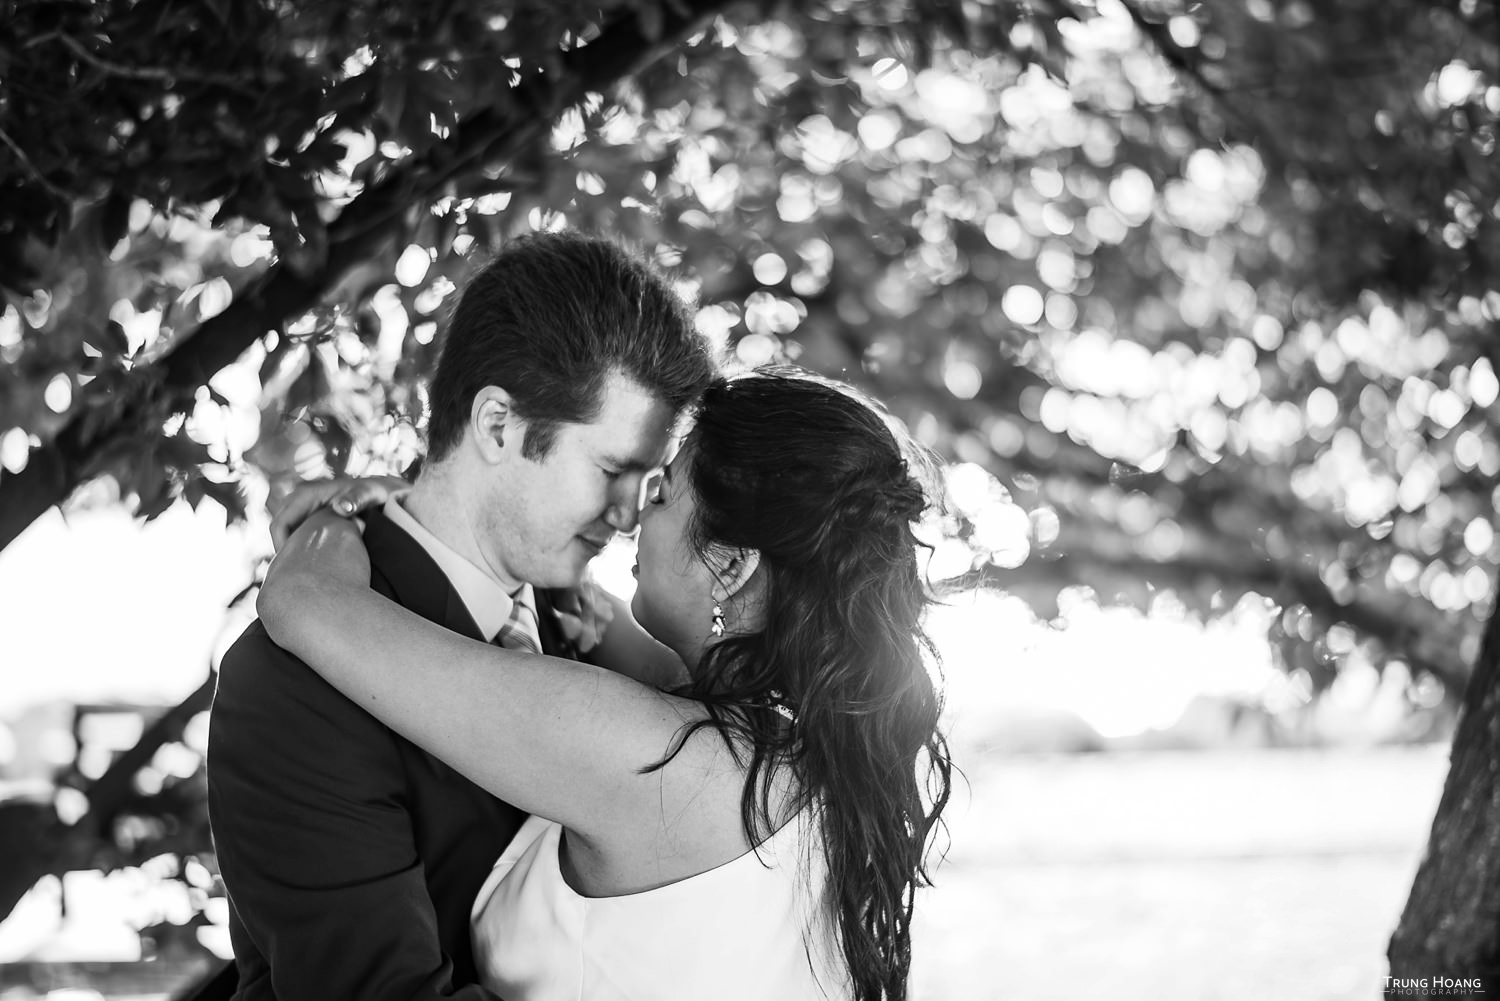 Romantic natural light couples photo